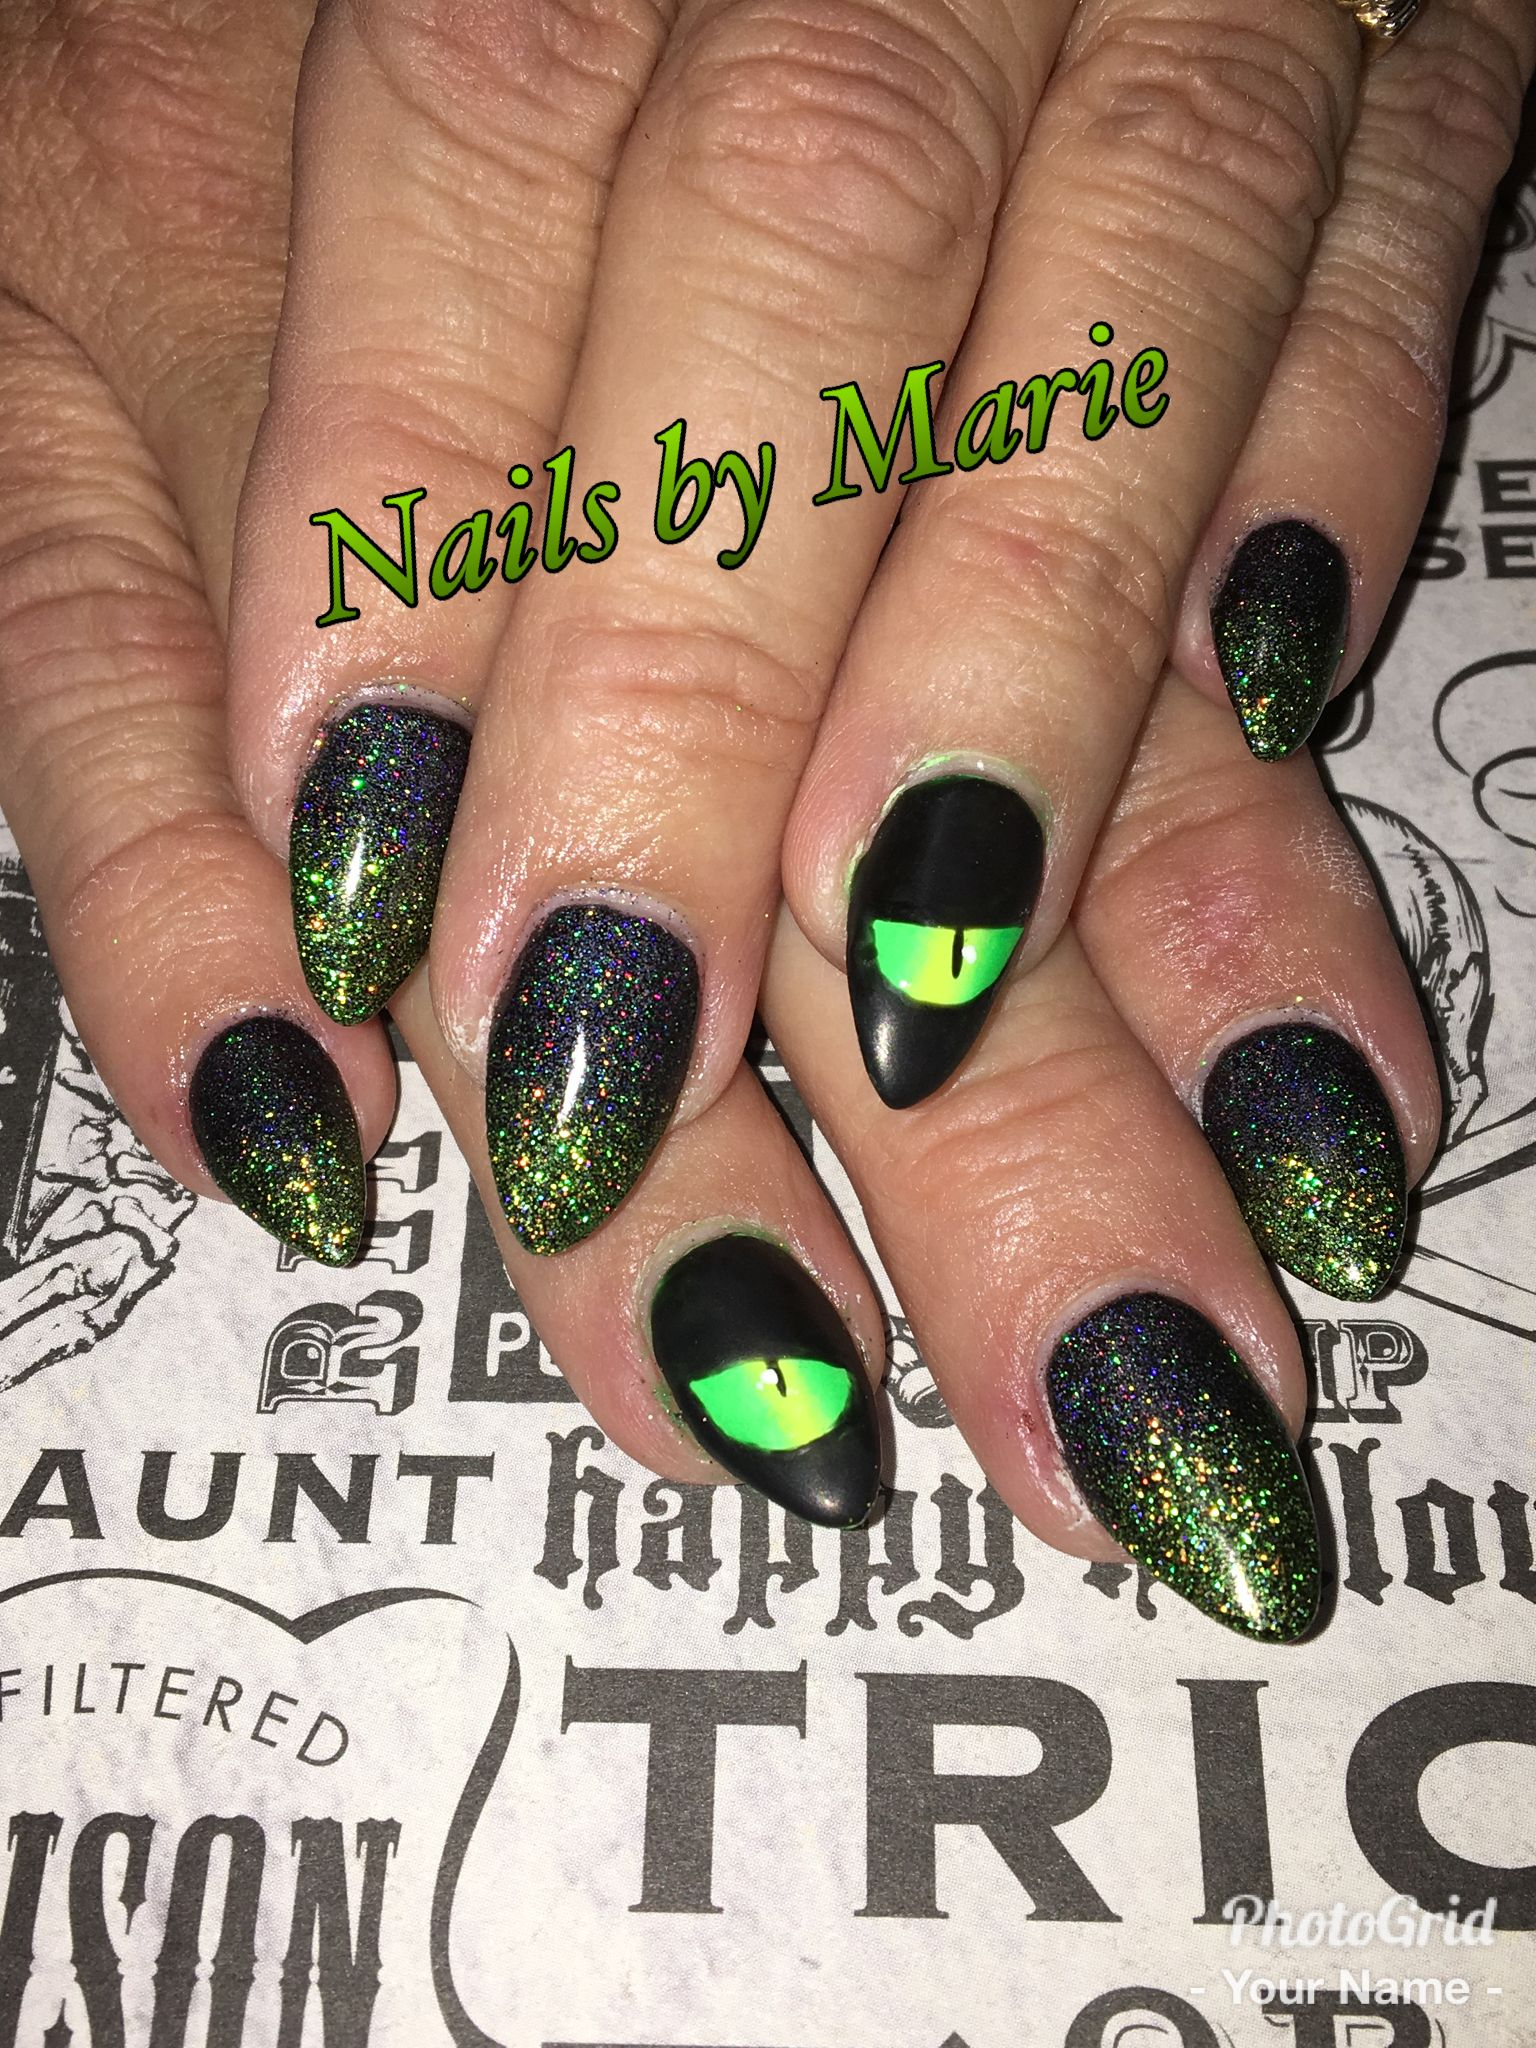 Pin by Marie Grose on A Nails Halloween (With images ...